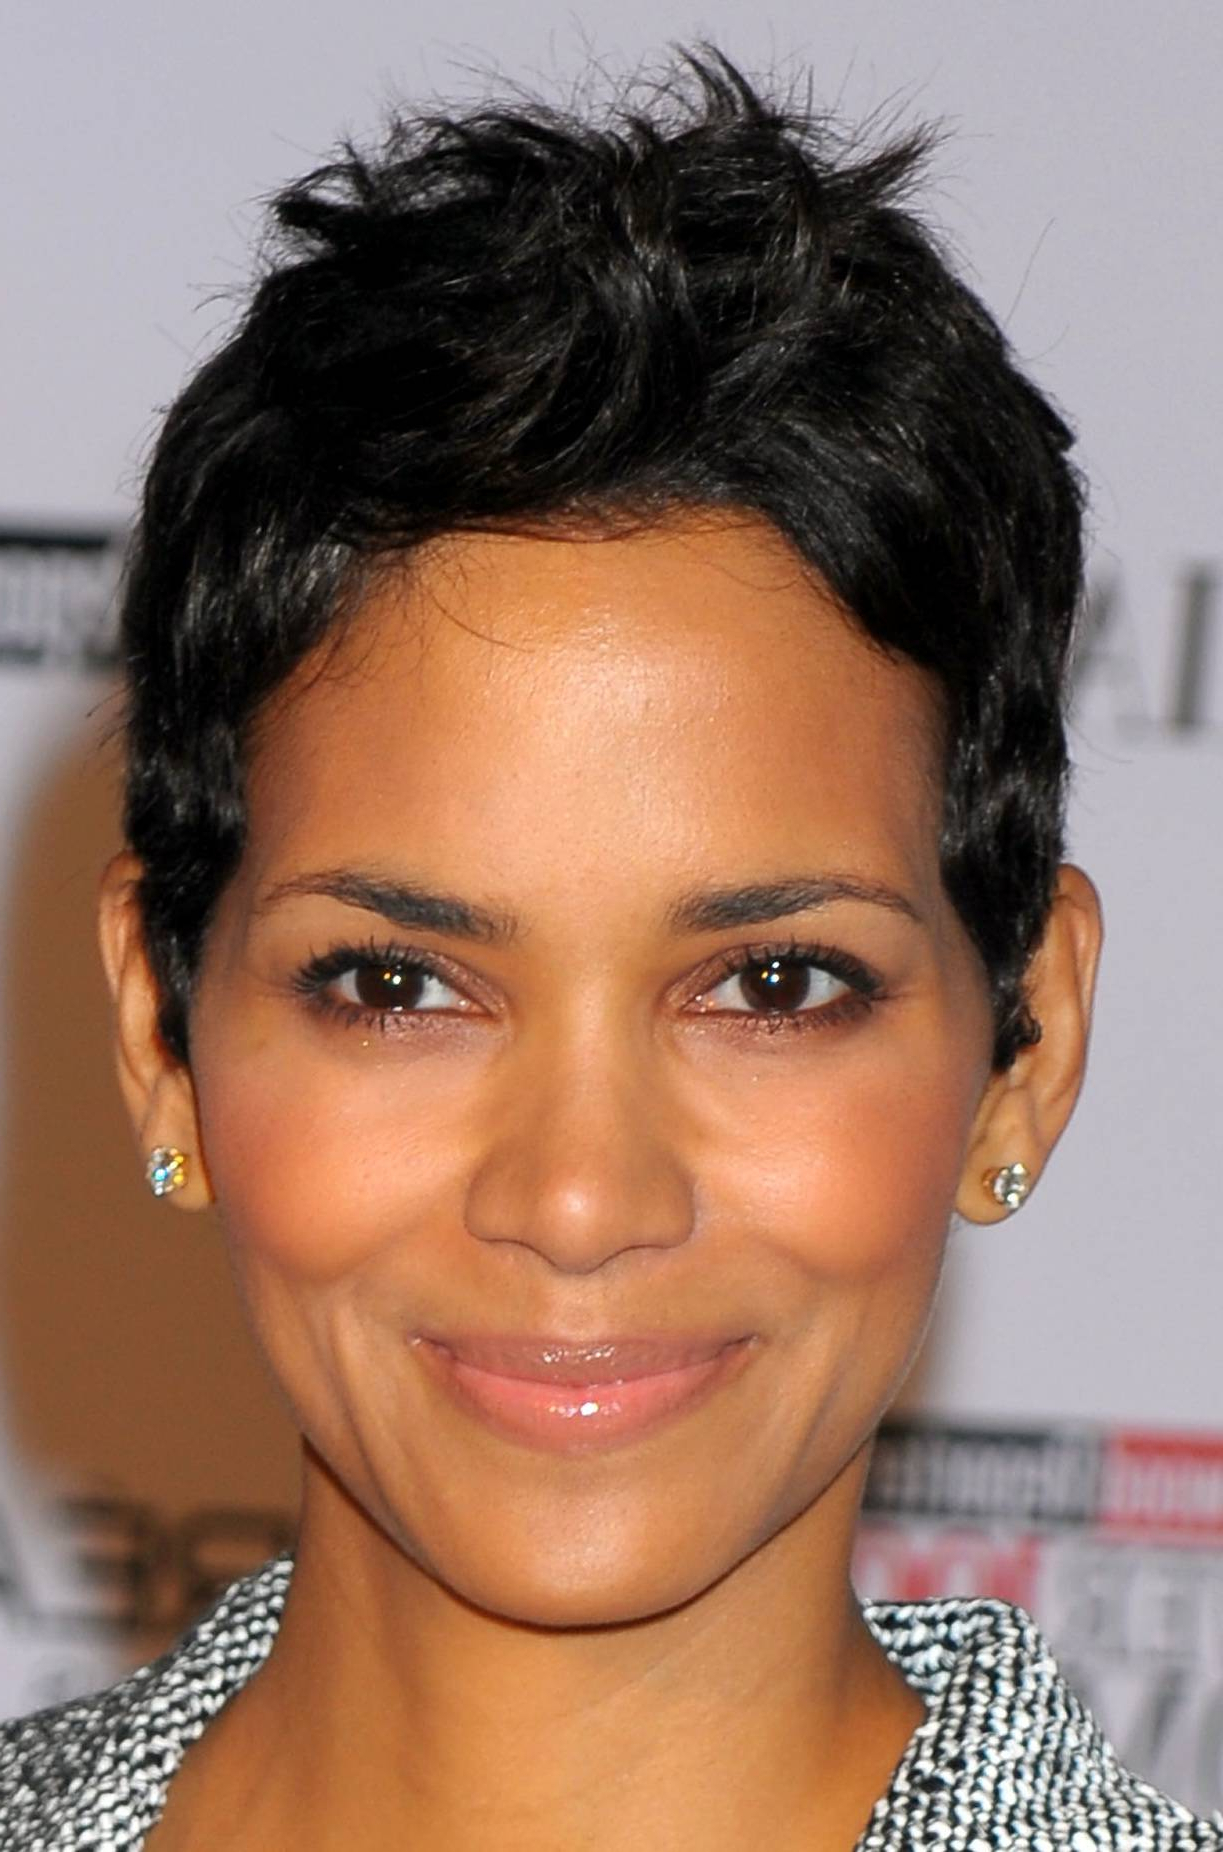 Short Hairstyles For Black Women With Round Faces – Hairstyle For Regarding Short Haircuts For African American Women With Round Faces (View 22 of 25)